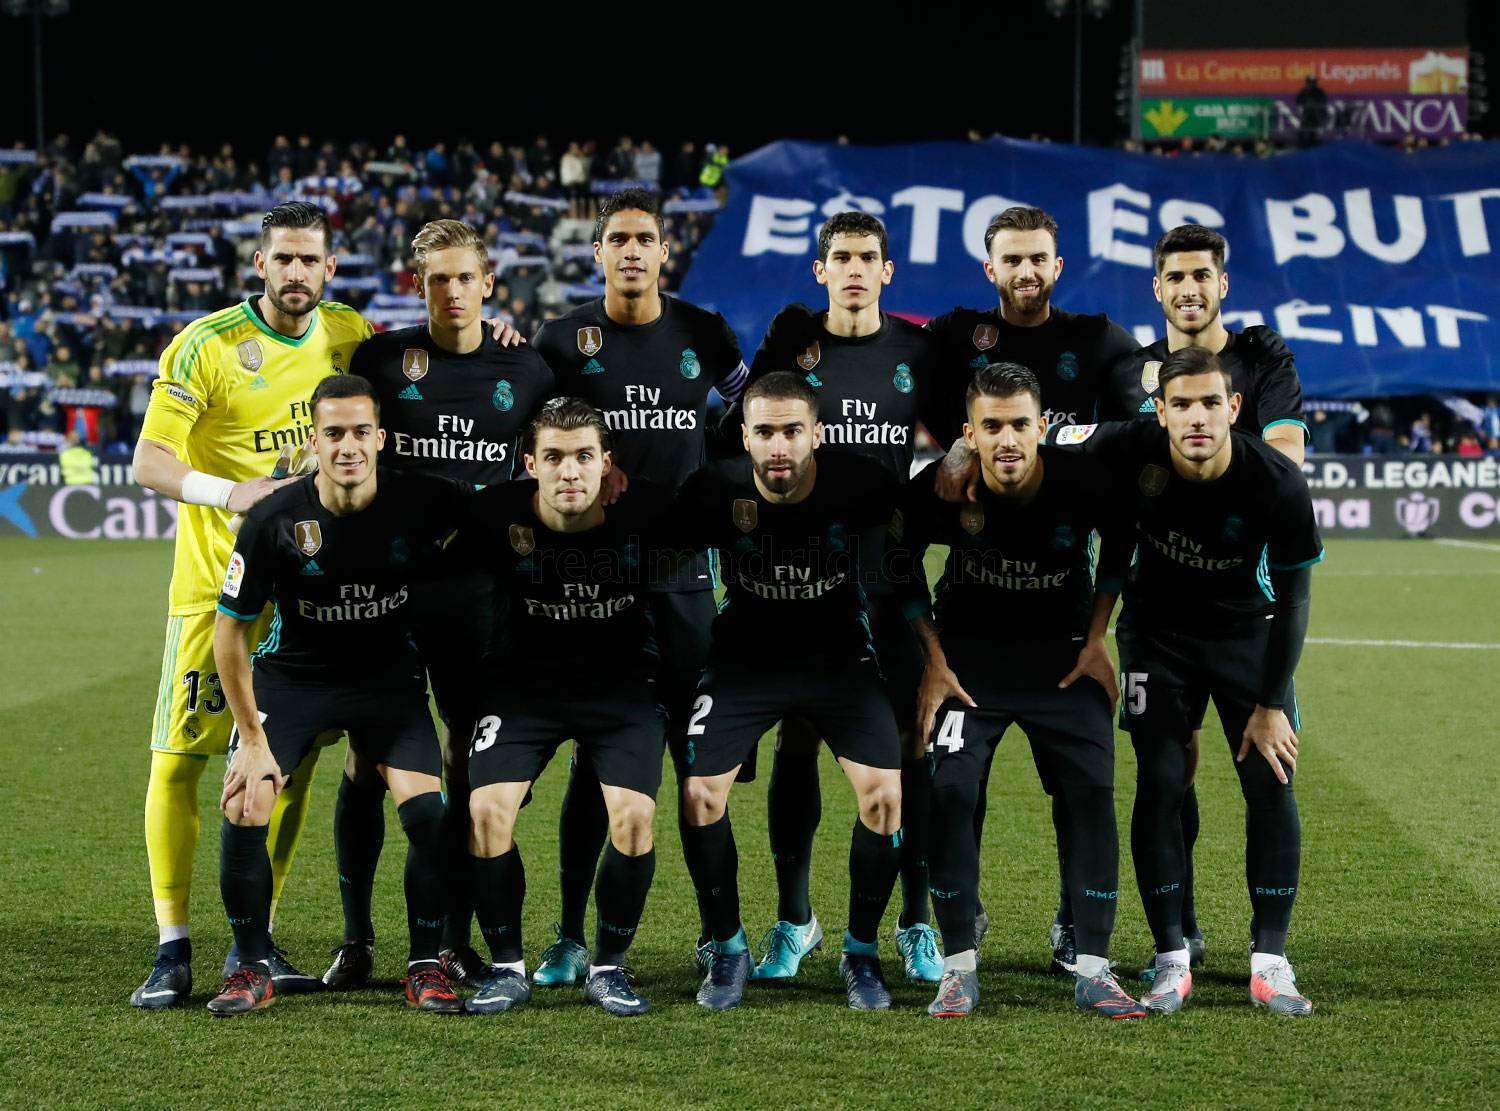 Real Madrid - Leganés - Real Madrid - 18-01-2018